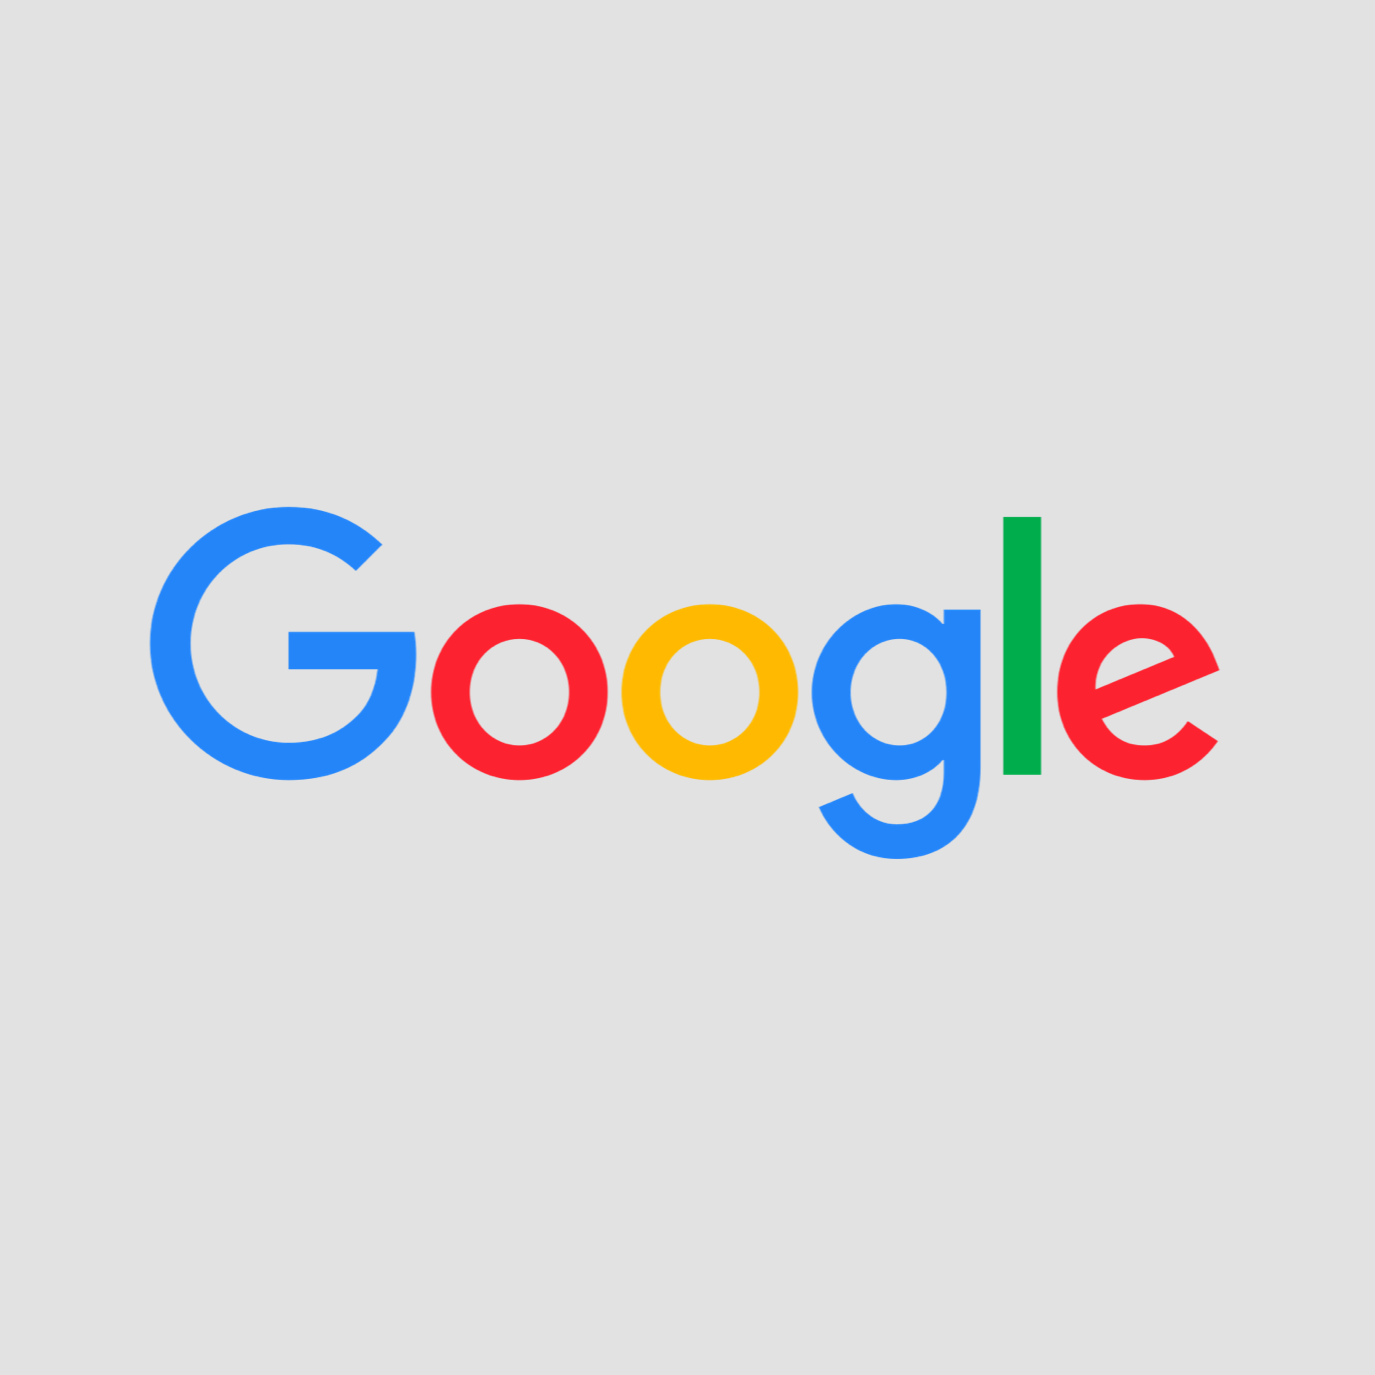 Google - Various project